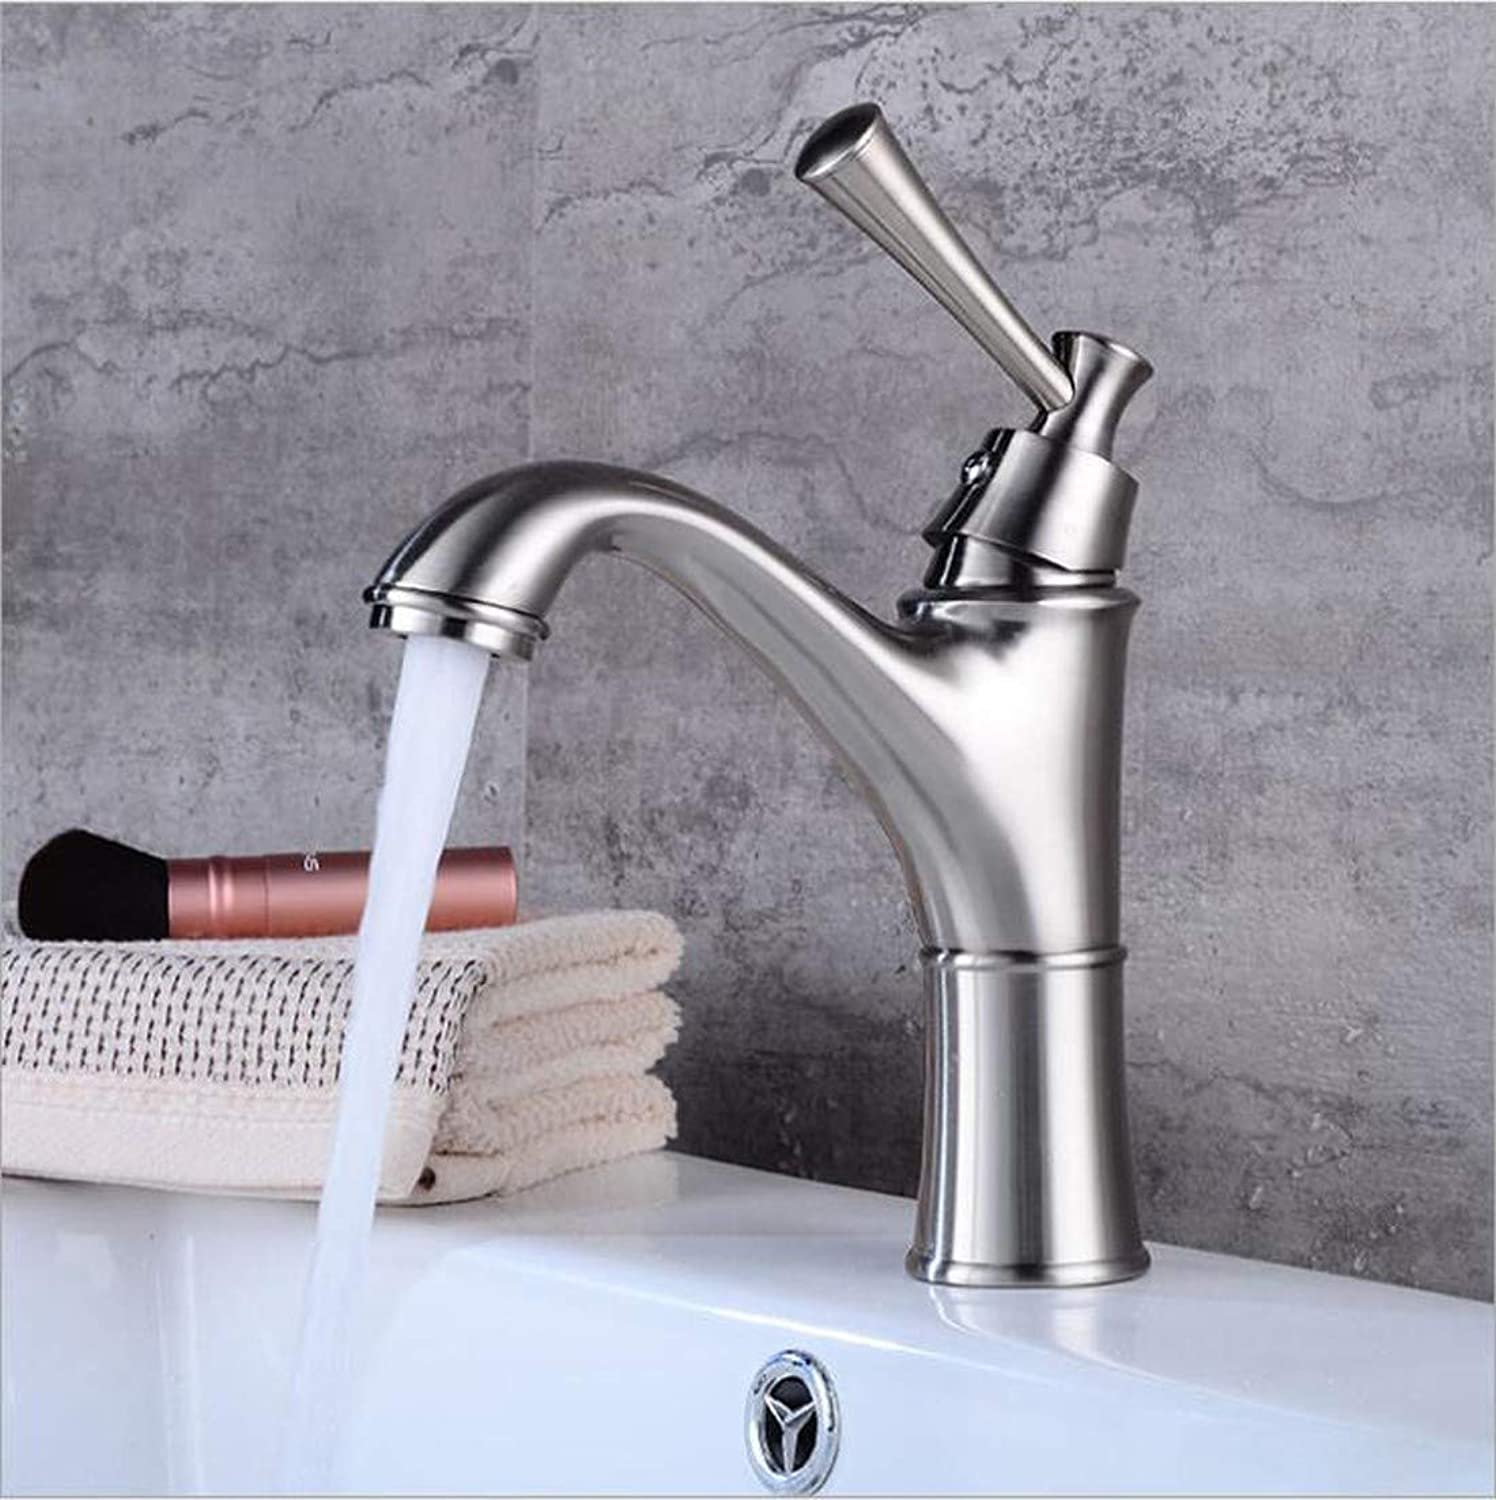 KAIDEFI European-Style All-Copper Antique Basin Faucet Hot And Cold Water Mixing Faucet Antique Wire Drawing Bathroom Sink Faucet Creative Simple Single Hole Hotel Bathroom Faucet Wire Drawing